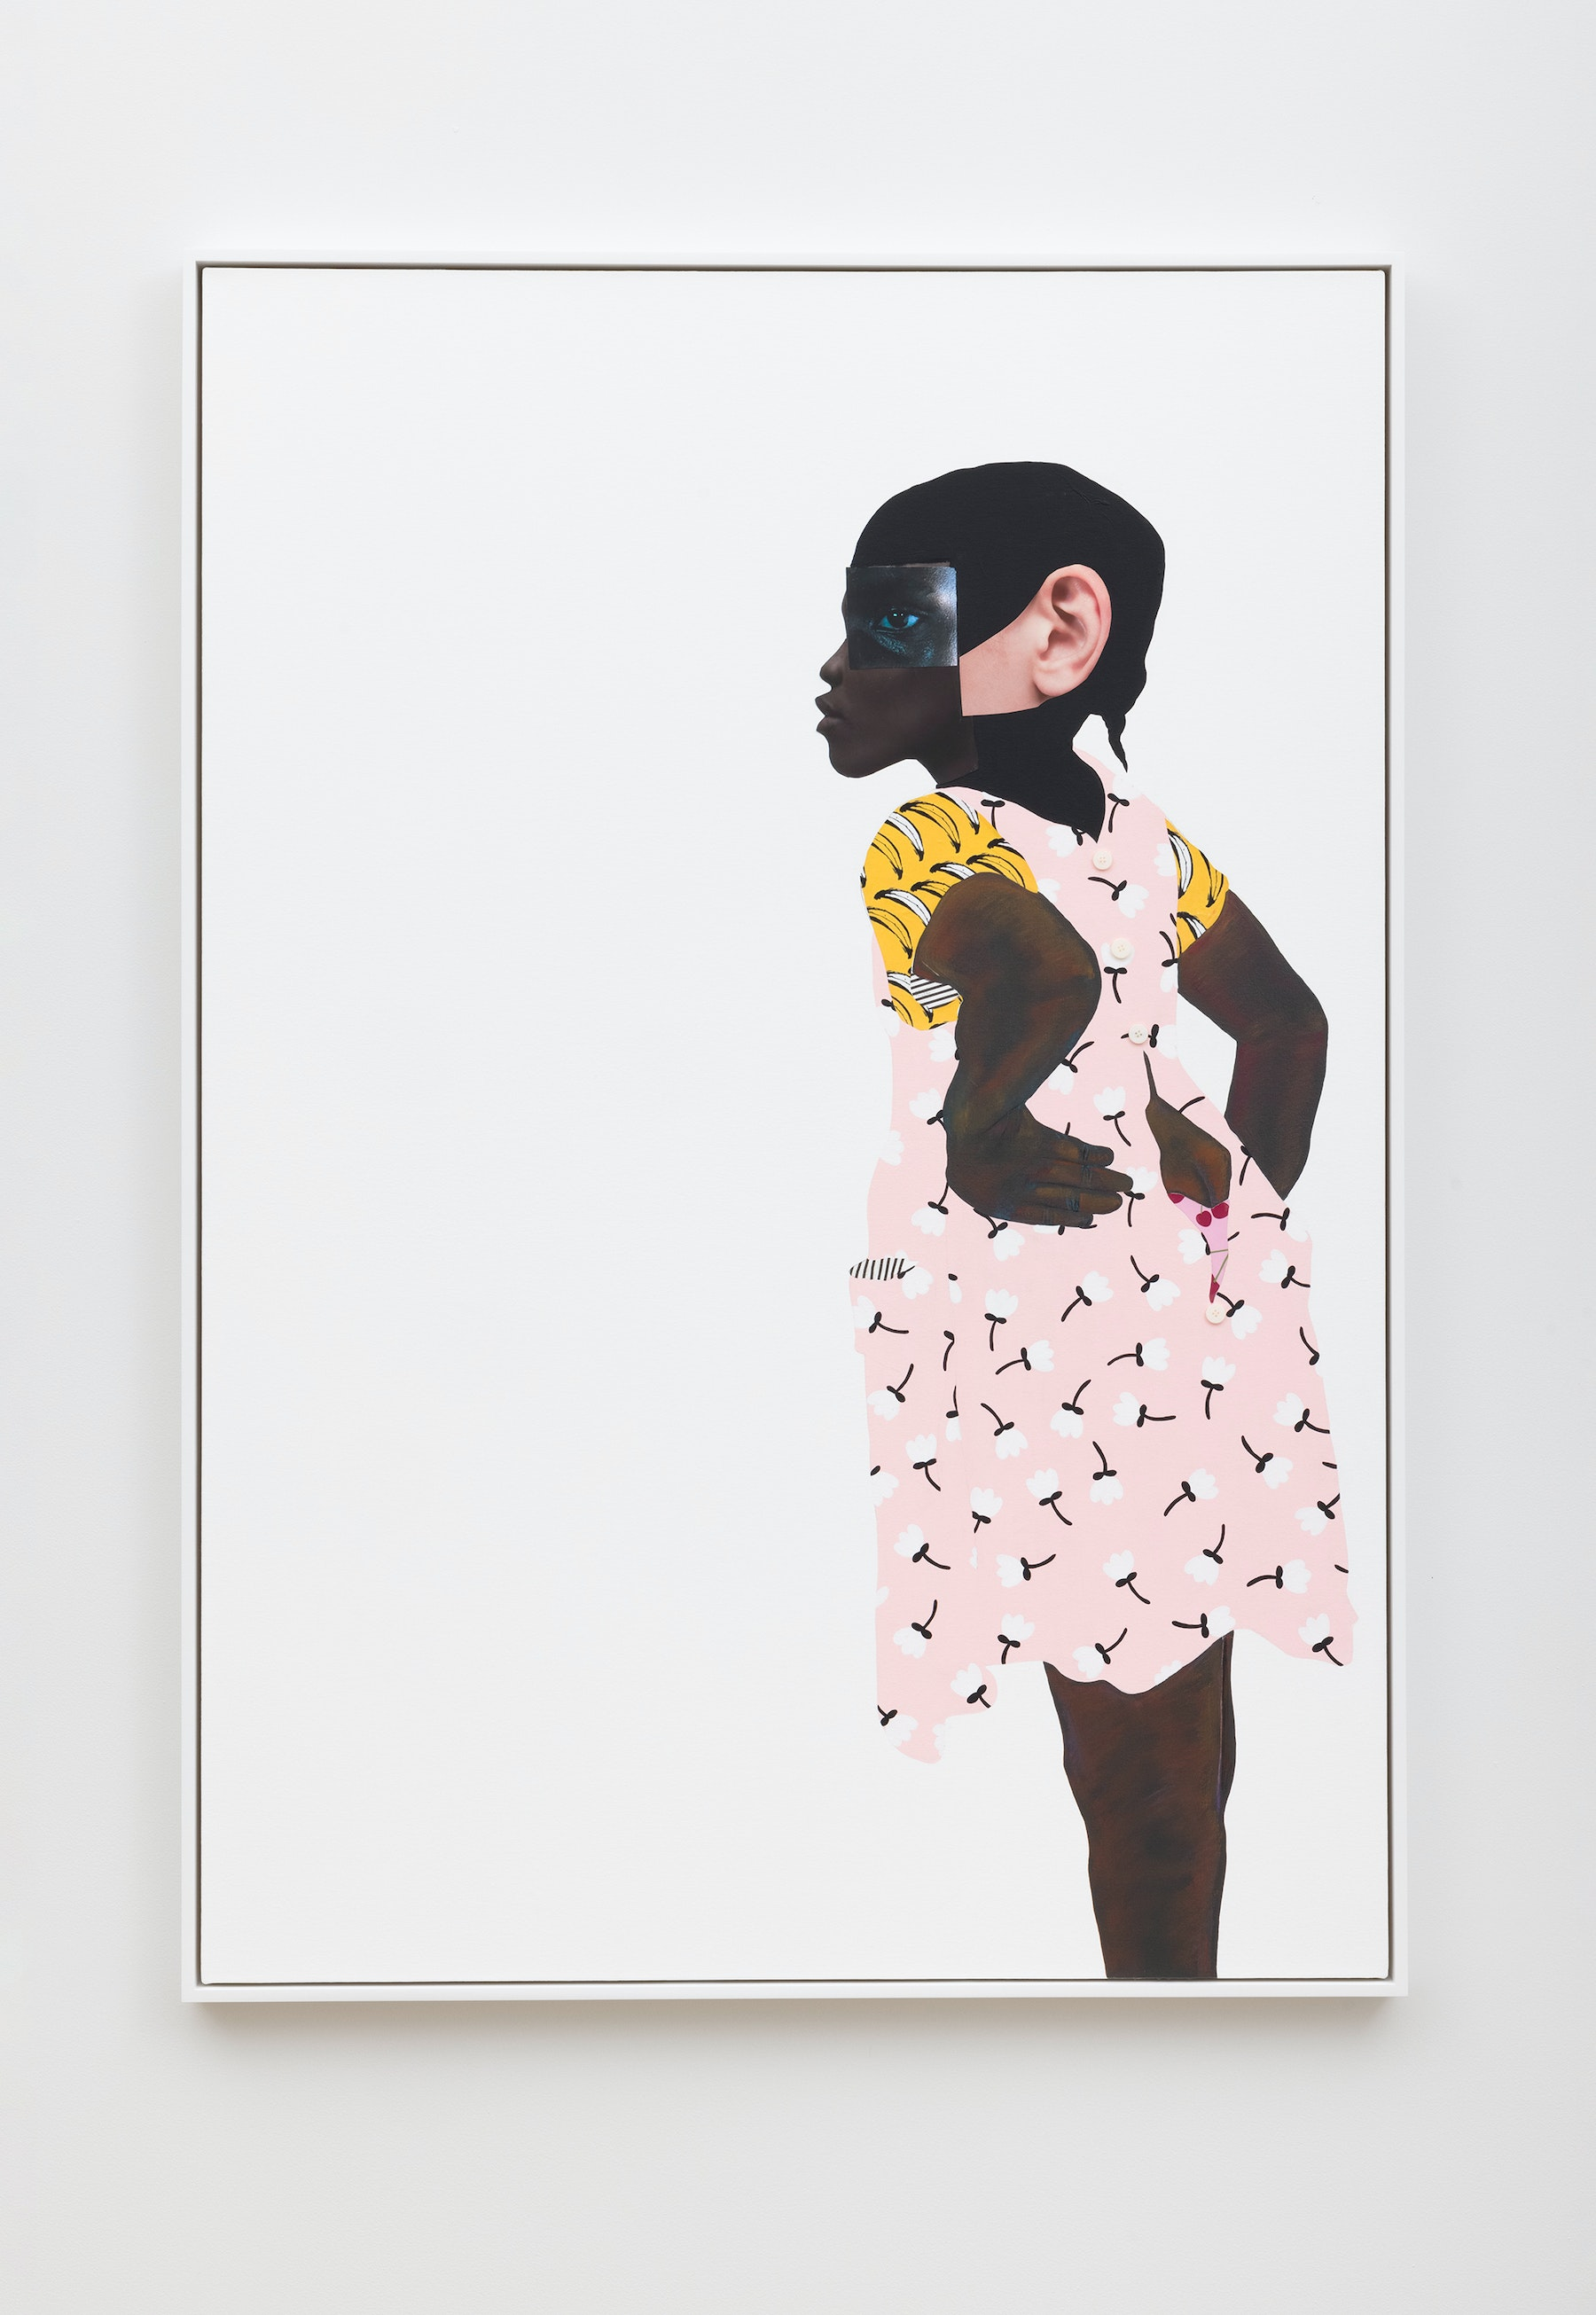 """Deborah Roberts """"That's not ladylike (No. 3),"""" 2020 Mixed media collage on canvas 65"""" x 45"""" [HxW] (165.1 x 114.3 cm); 66 ¹⁄₂"""" x 46 ¹⁄₂"""" x 2 ¹⁄₄"""" [HxWxD] (168.91 x 118.11 x 5.71 cm) framed Inventory #ROB454 Courtesy of the artist and Vielmetter Los Angeles Photo credit: Jeff McLane"""